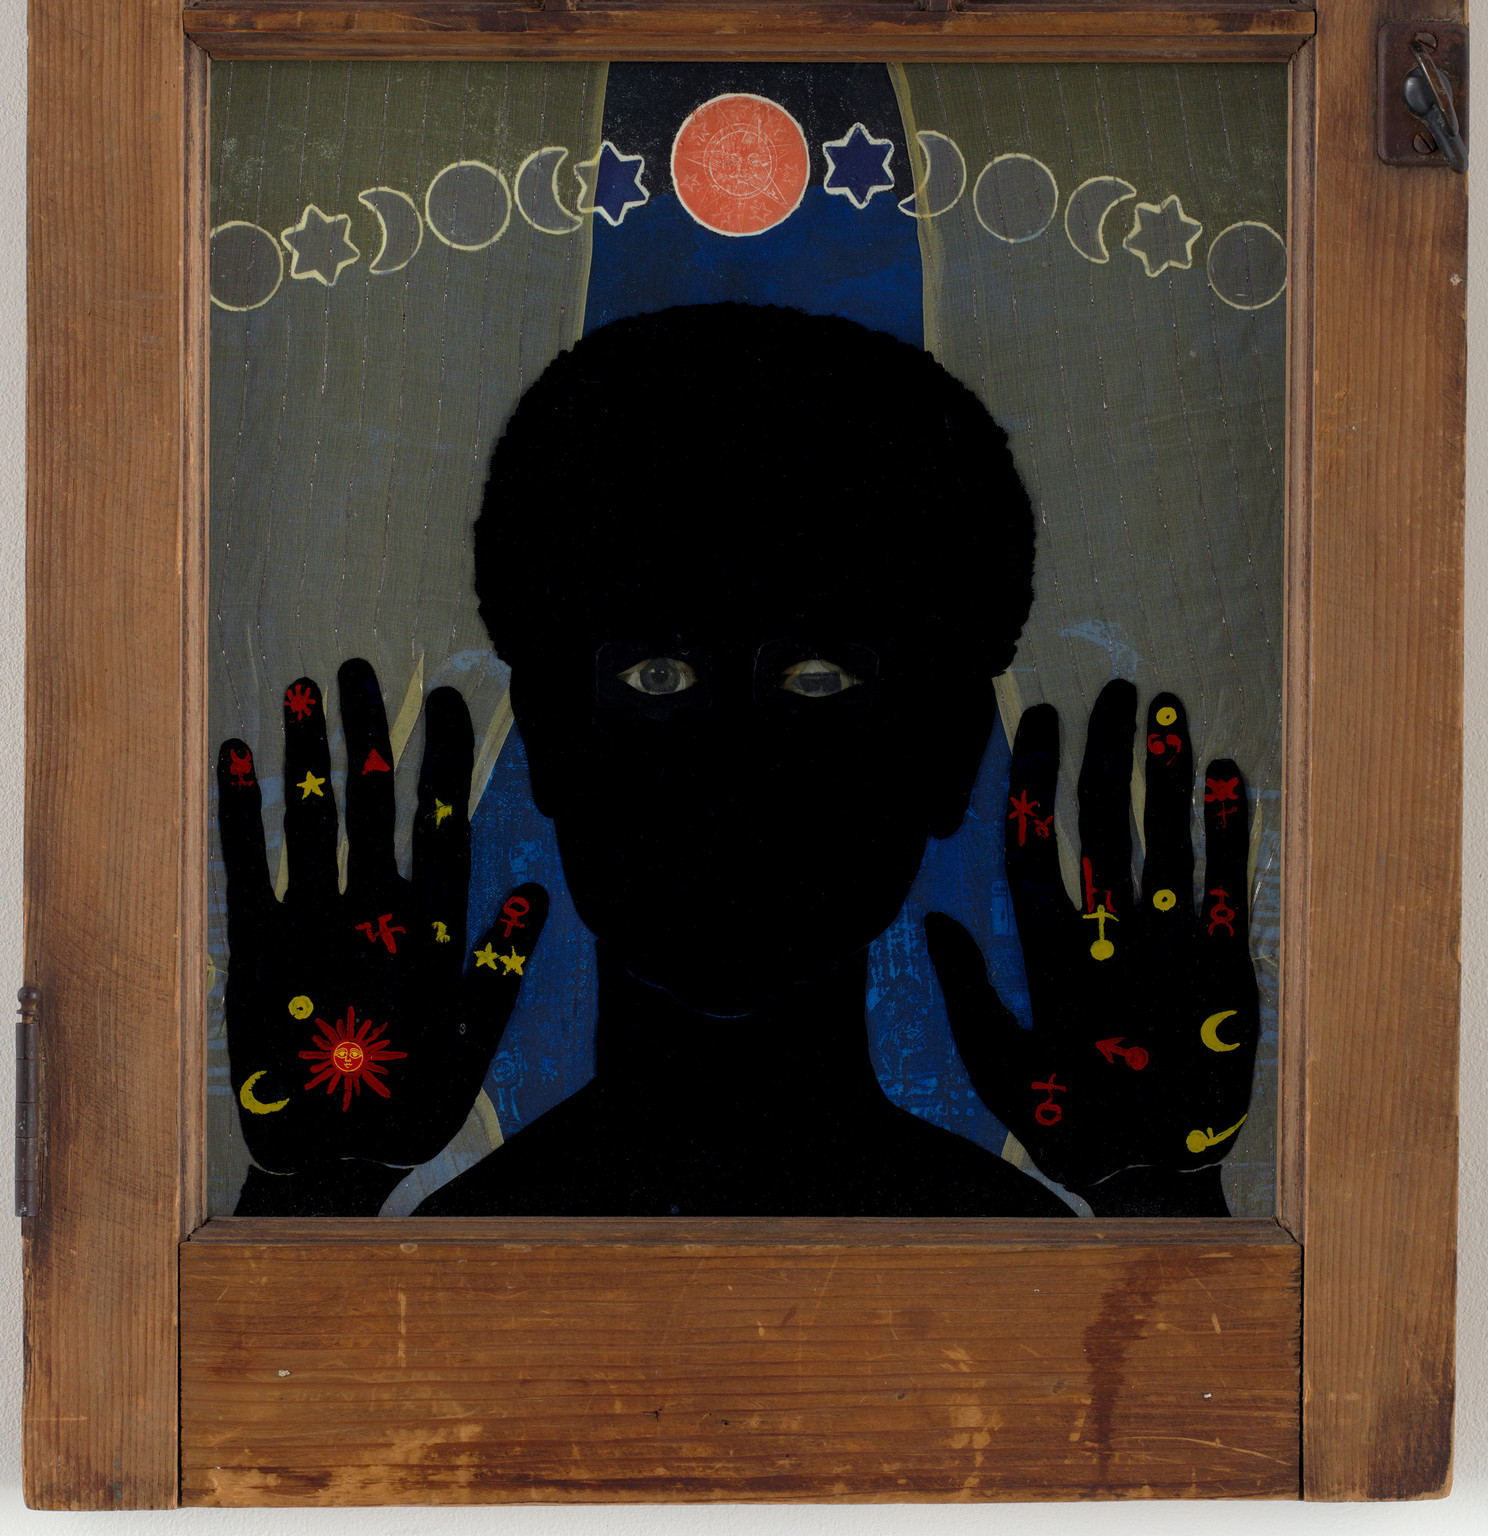 "Betye Saar. _Black Girl's Window. 1969. Wooden window frame with paint, cut-and-pasted printed and painted papers, daguerreotype, lenticular print, and plastic figurine. 35 3⁄4 x 18 x 1 1⁄2"" (90.8 x 45.7 x 3.8 cm). Gift of Candace King Weir through The Modern Women'sFund, and Committee on Painting and Sculpture Funds"